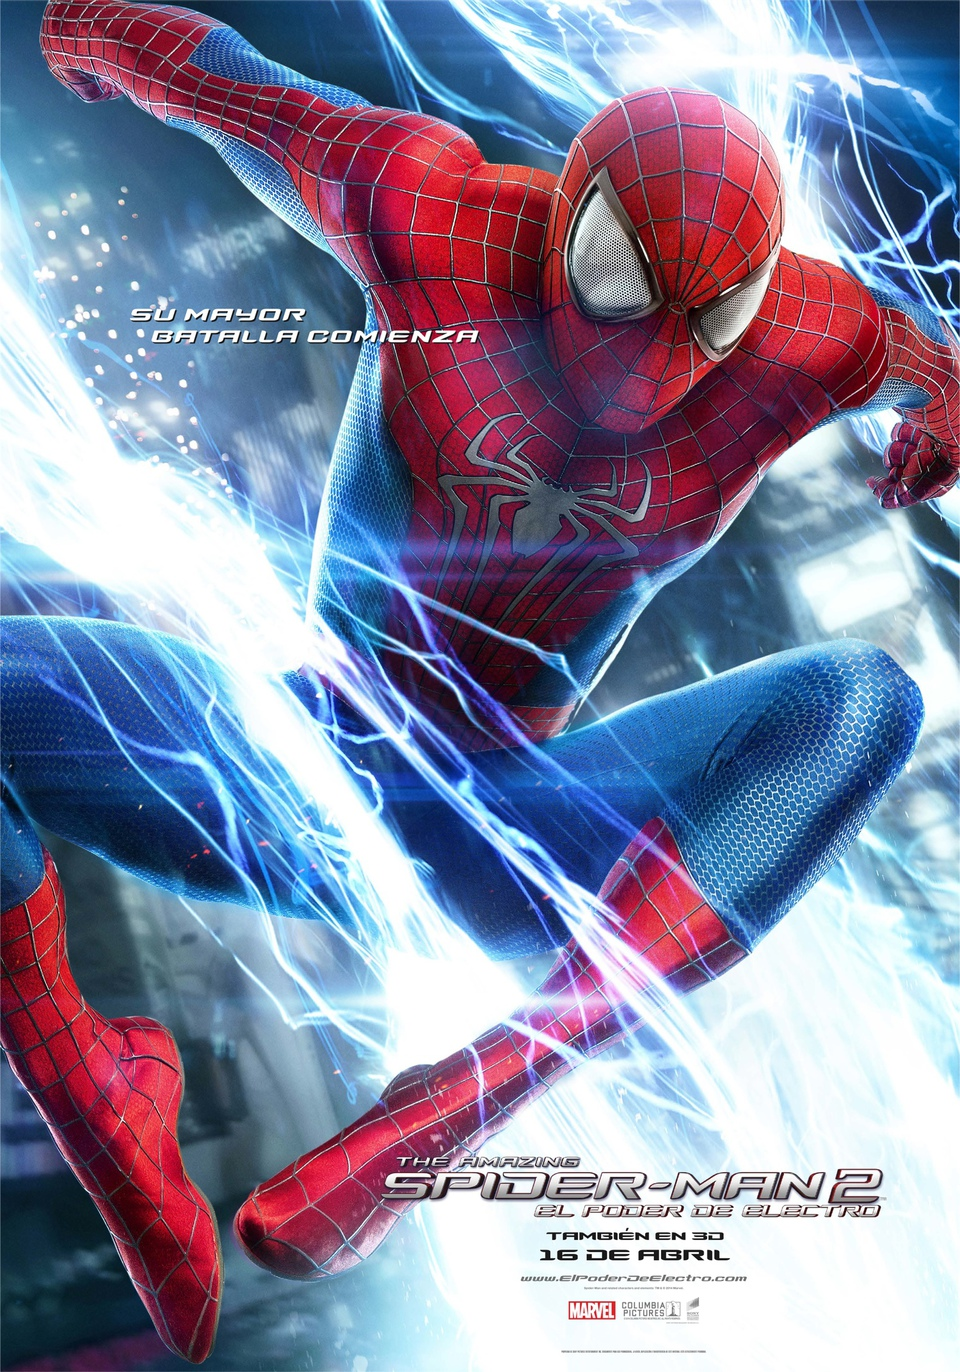 THE AMAZING SPIDER-MAN 2. EL PODER DE ELECTRO 3D